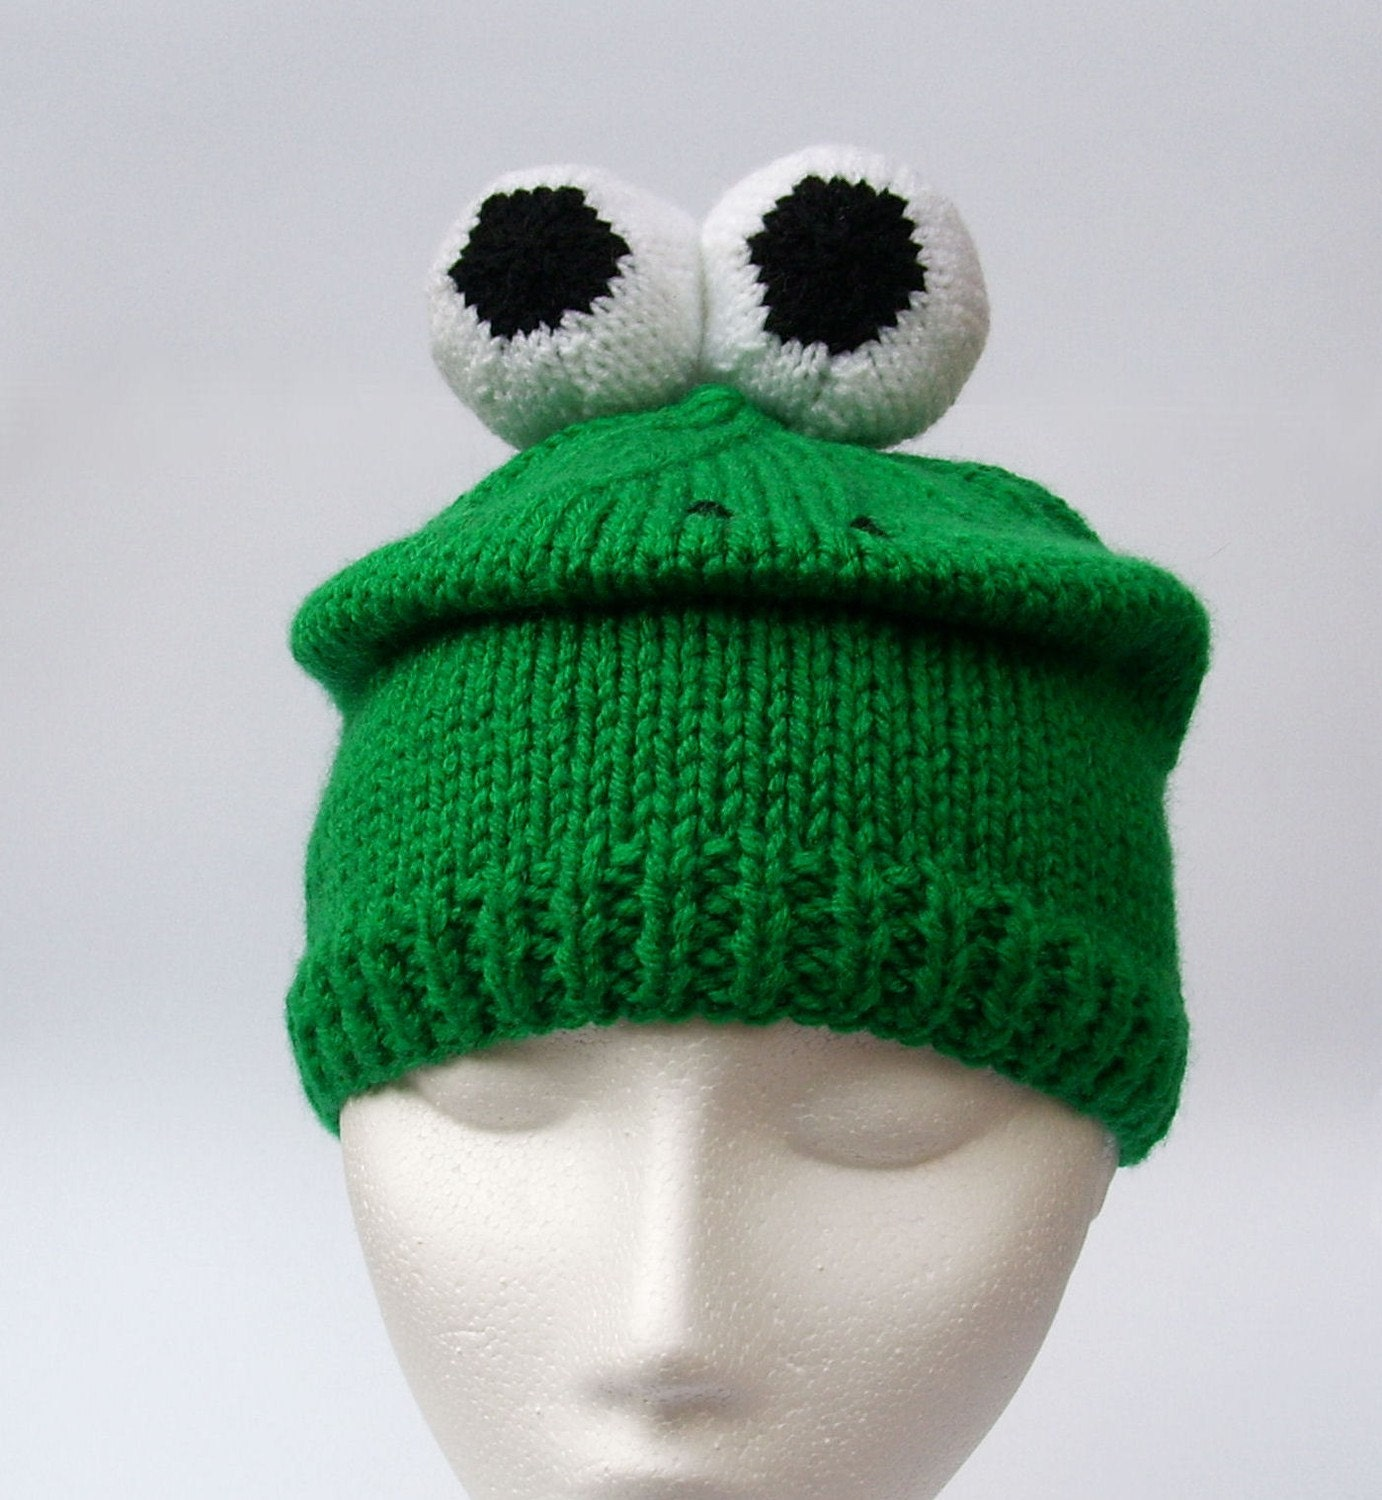 Knitting Pattern For Frog Hat : Knitted Frog Hat Animal beanie in Green with eyeballs by jarg0n Craftjuice ...